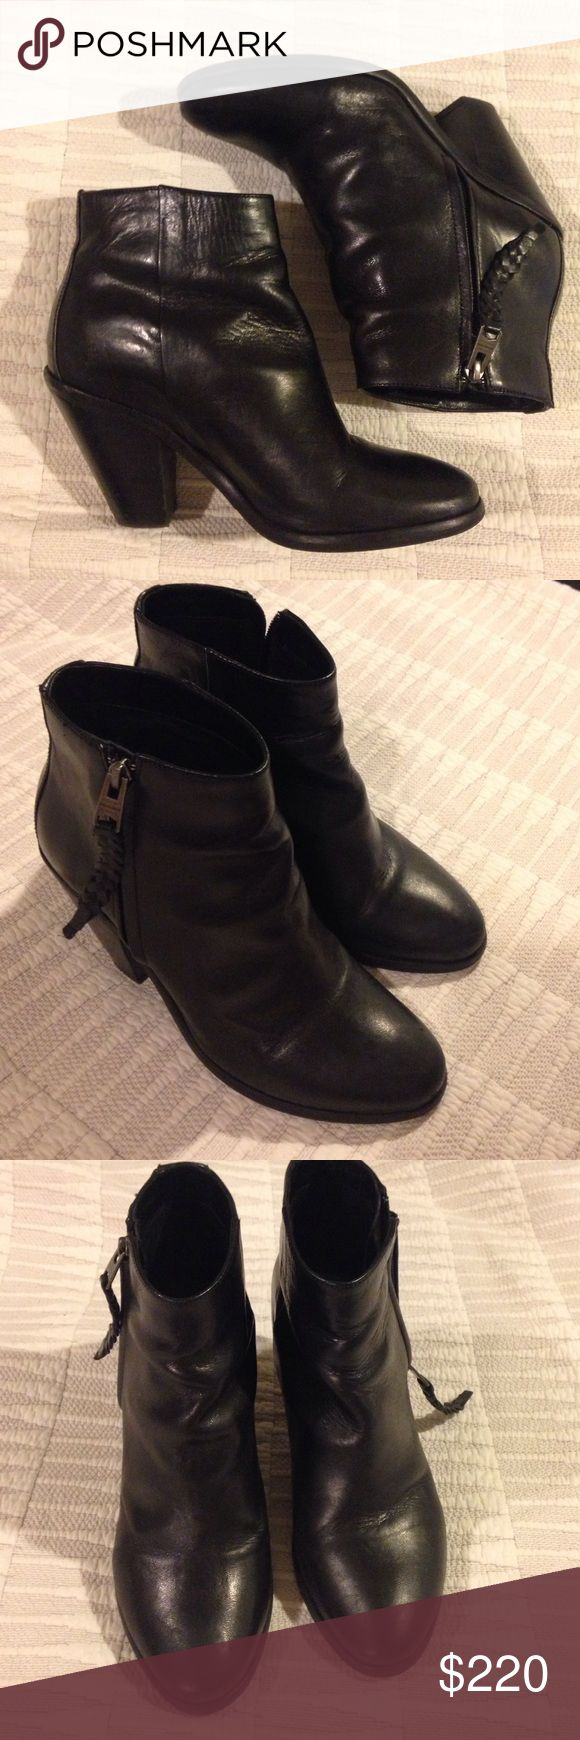 Allsaints boots Nice a broken in. Lucky you! Some minor wear but still look great! They are really cute but I have a bad knee and can't wear them. True to size. Make an offer or trade! All Saints Shoes Ankle Boots & Booties